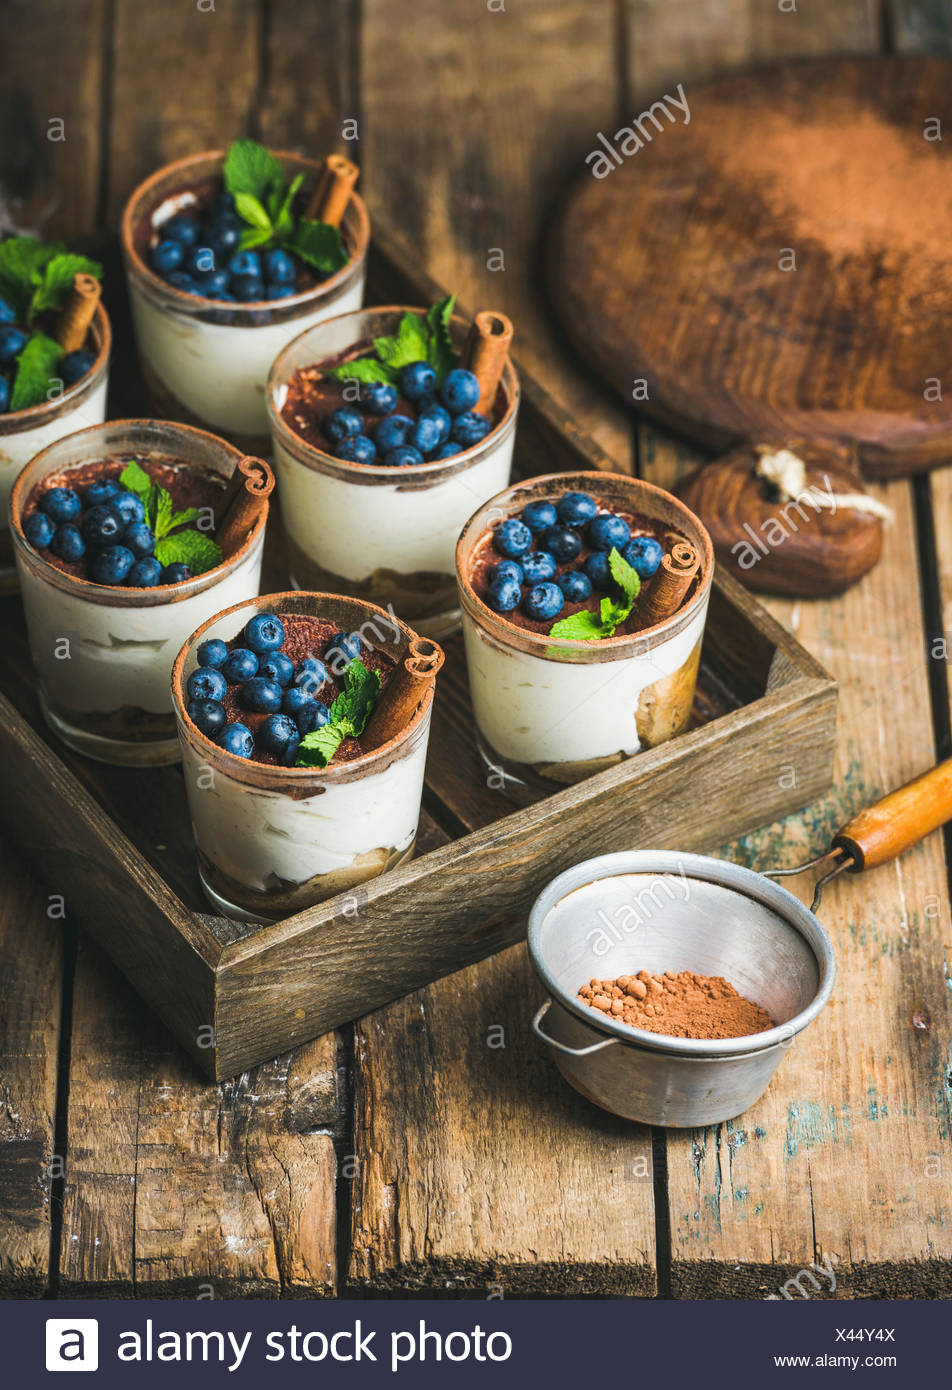 Homemade Tiramisu dessert in glasses with cinnamon, mint and fresh blueberries in wooden tray and sieve with cocoa powder over r - Stock Image